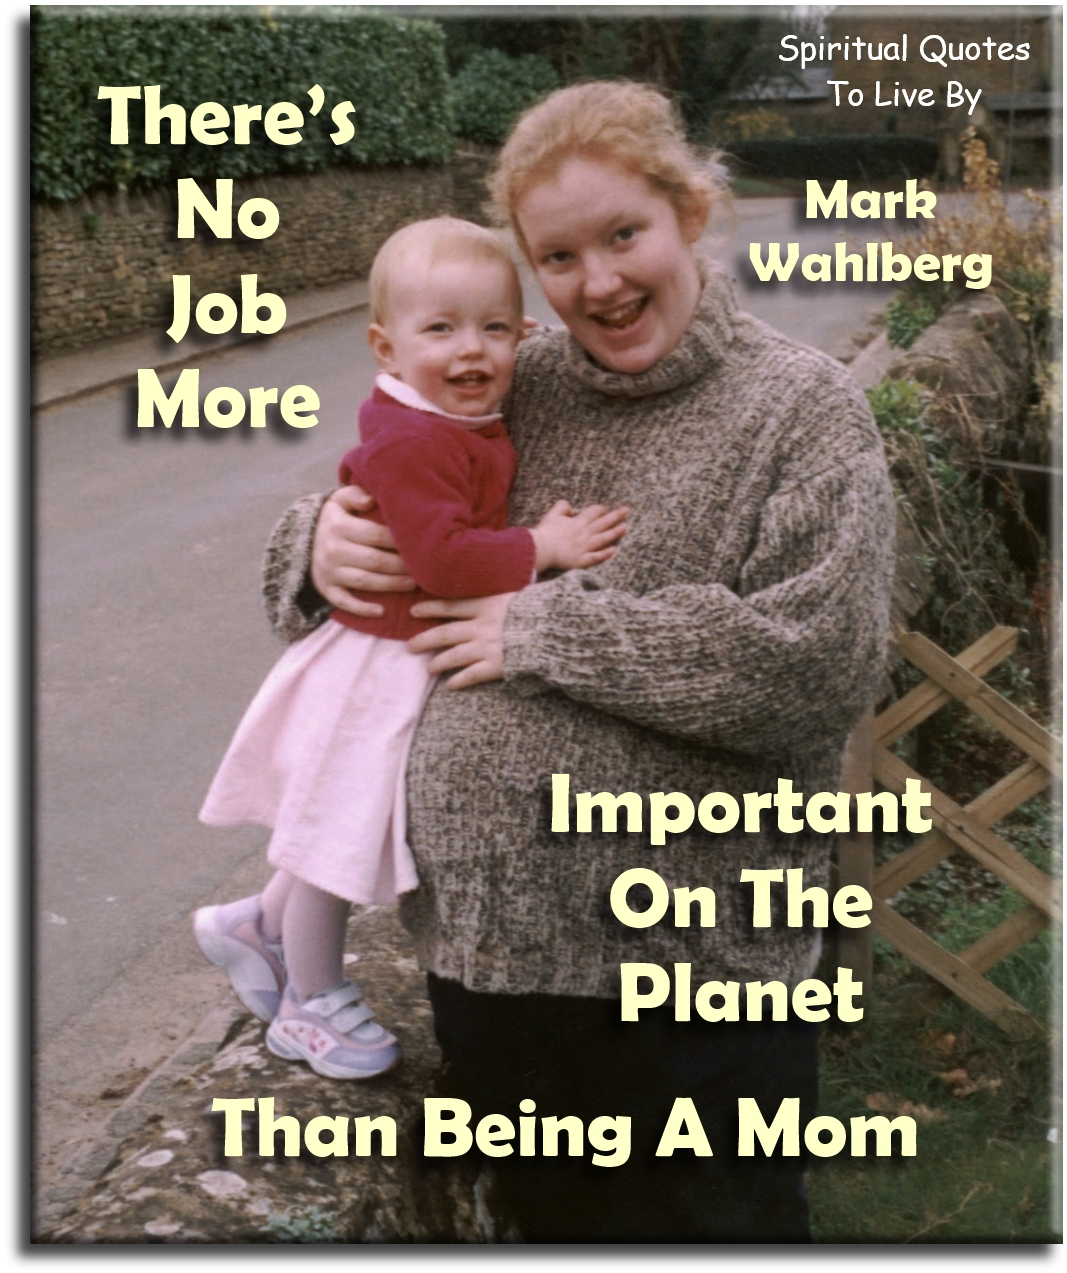 There's no job more important on the planet than being a mom - Mark Wahlberg - Spiritual Quotes To Live By